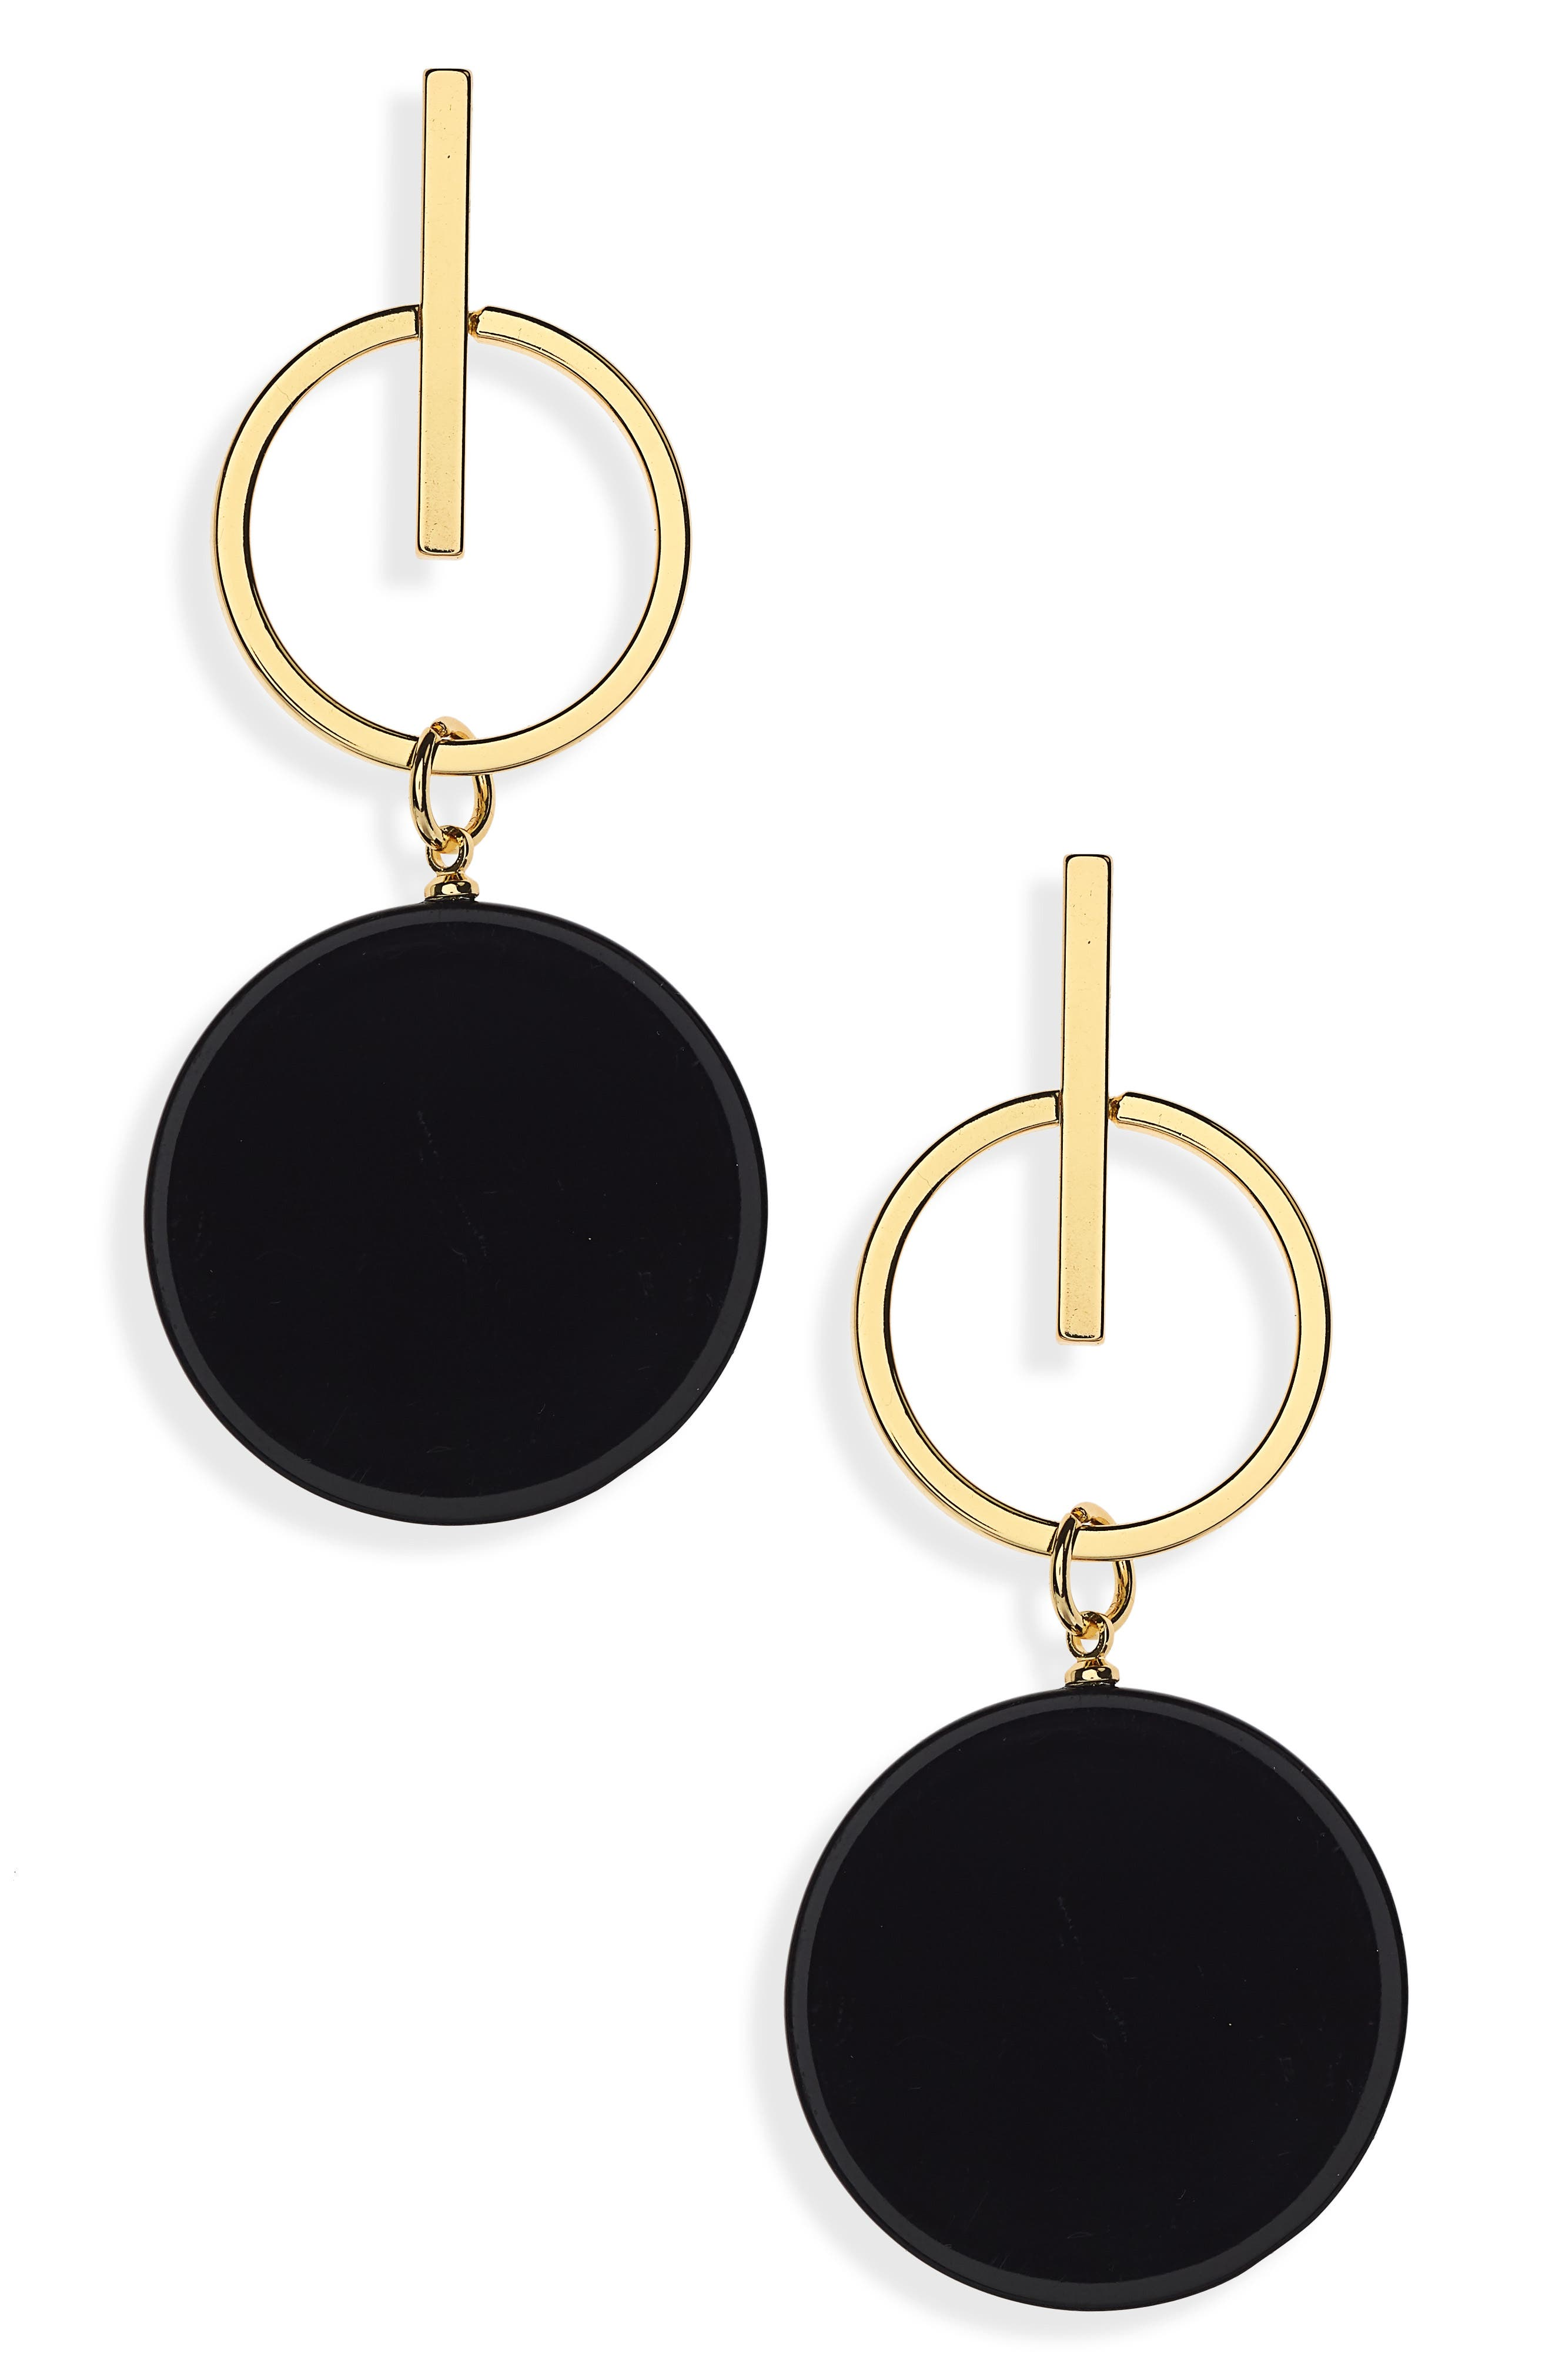 Acrylic Disc Earrings,                         Main,                         color, Gold/ Black